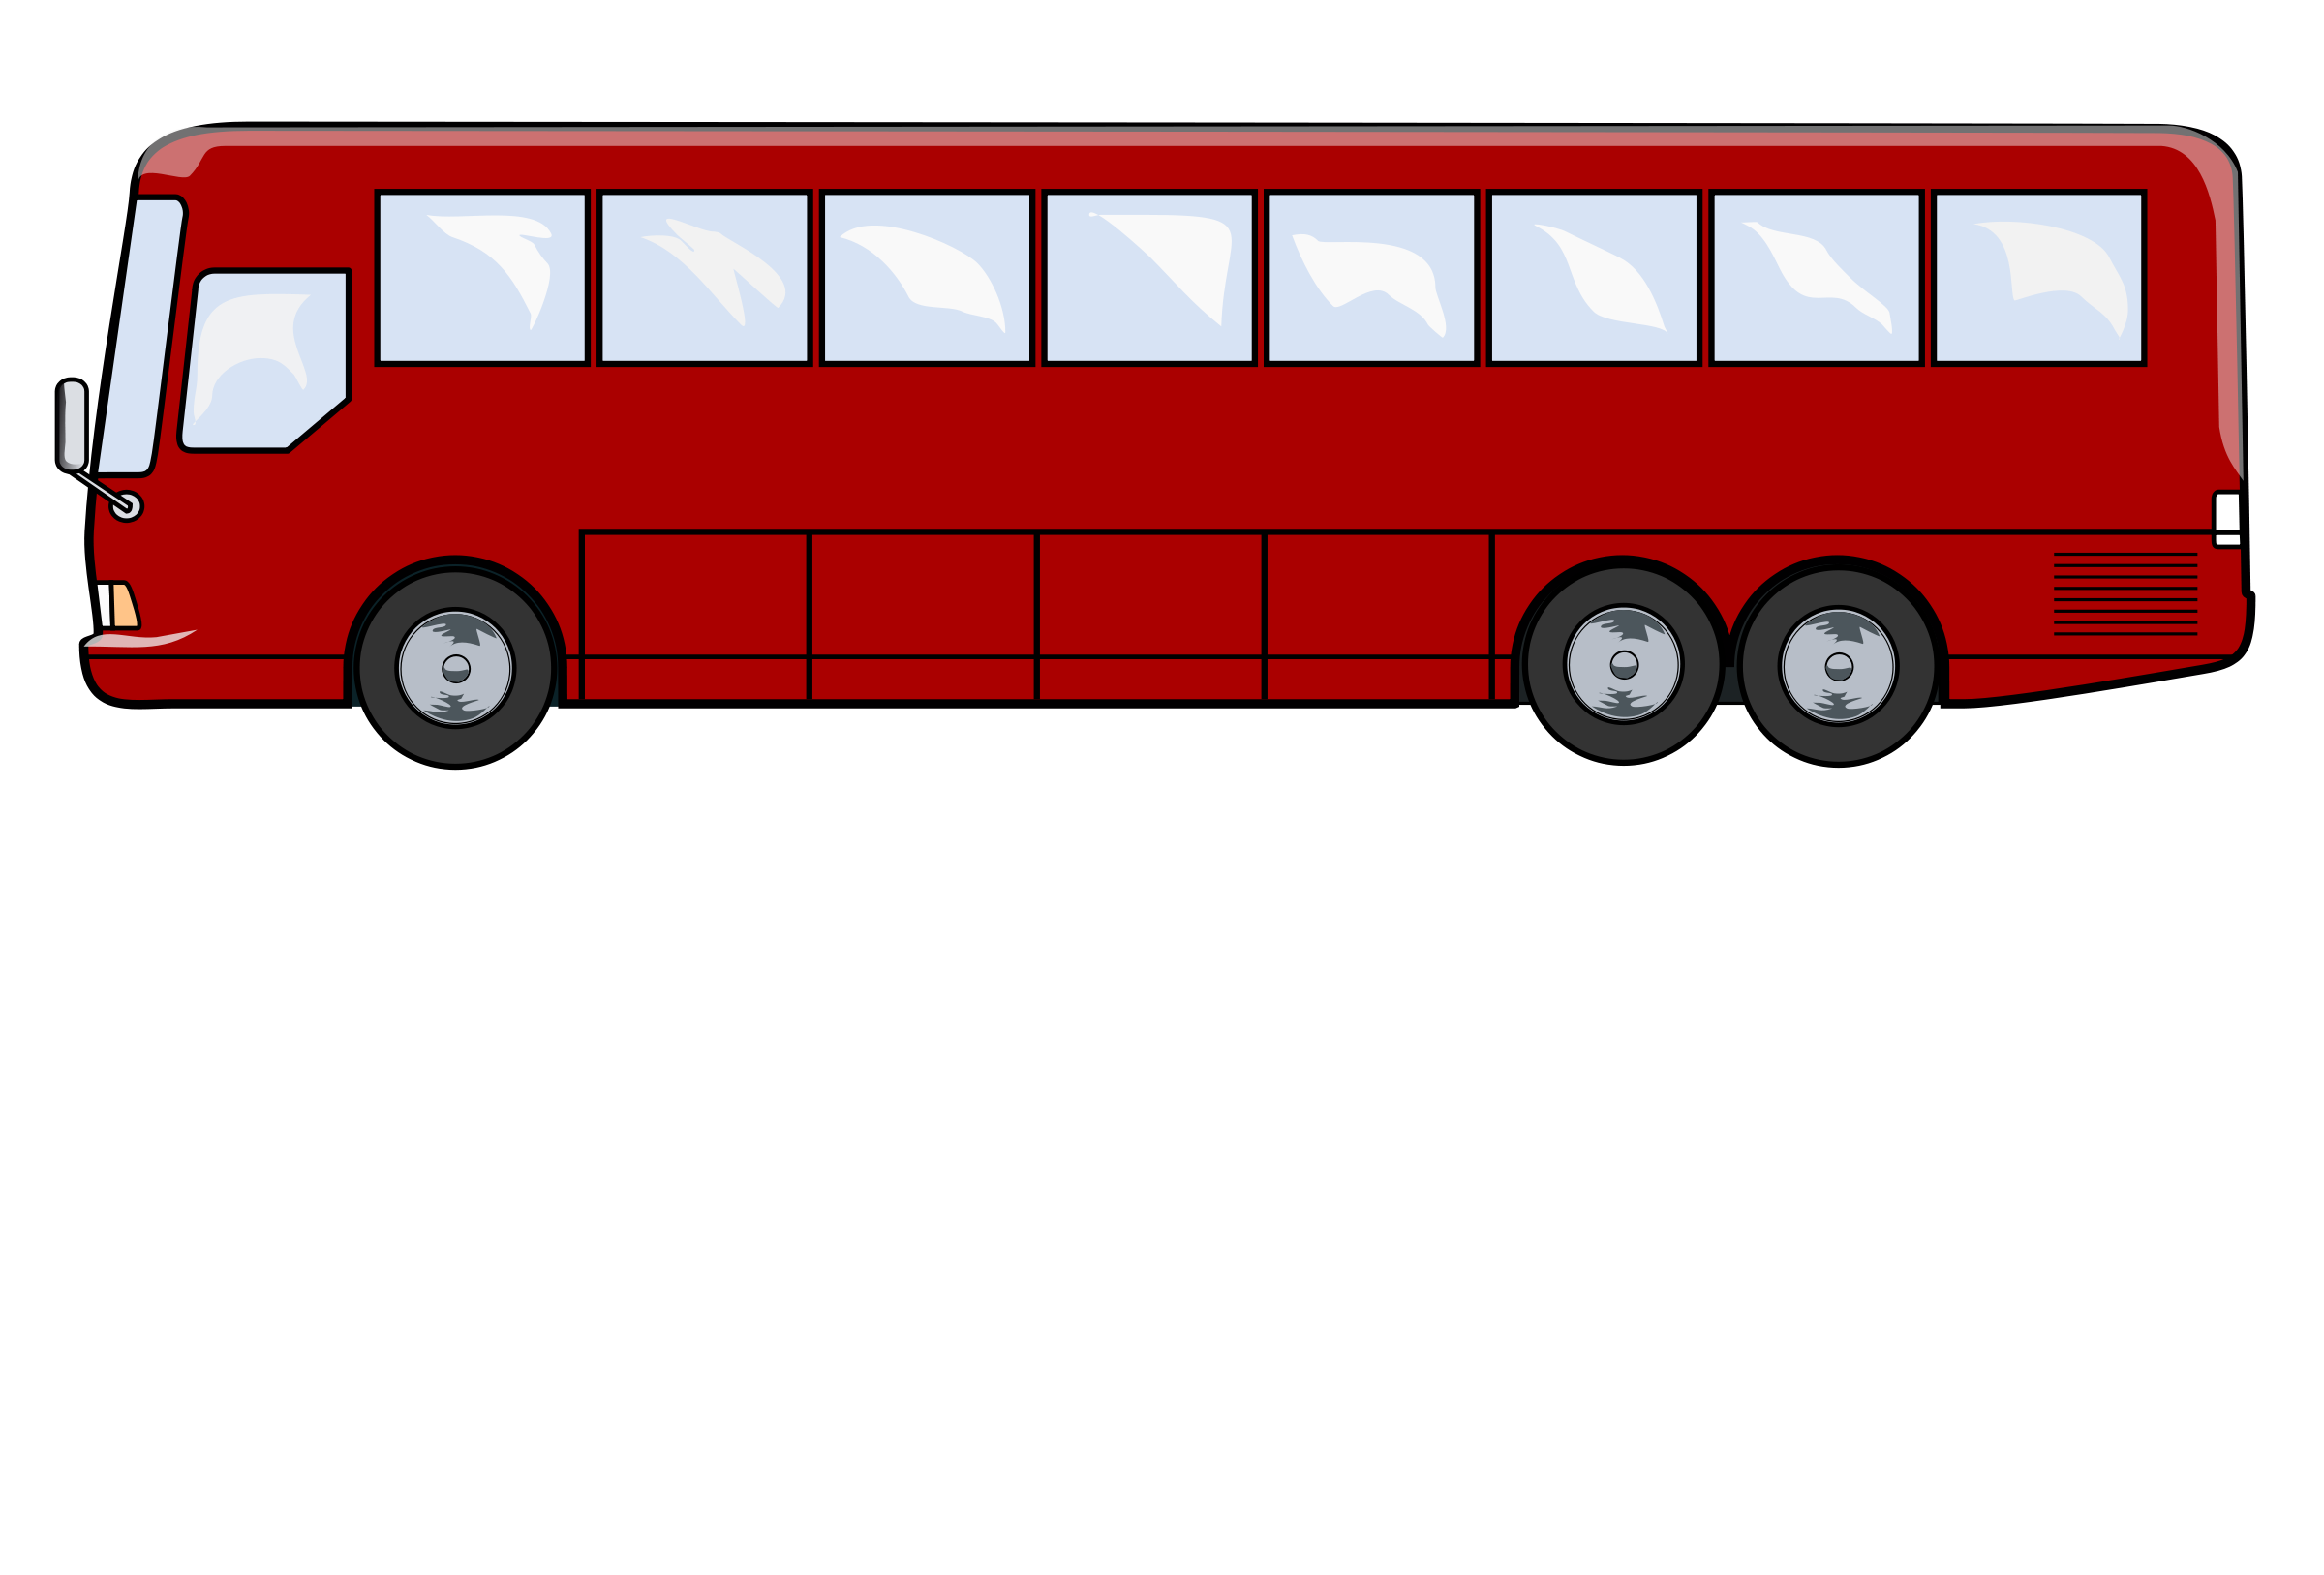 Red Shuttle Bus Clipart - Clipart Kid